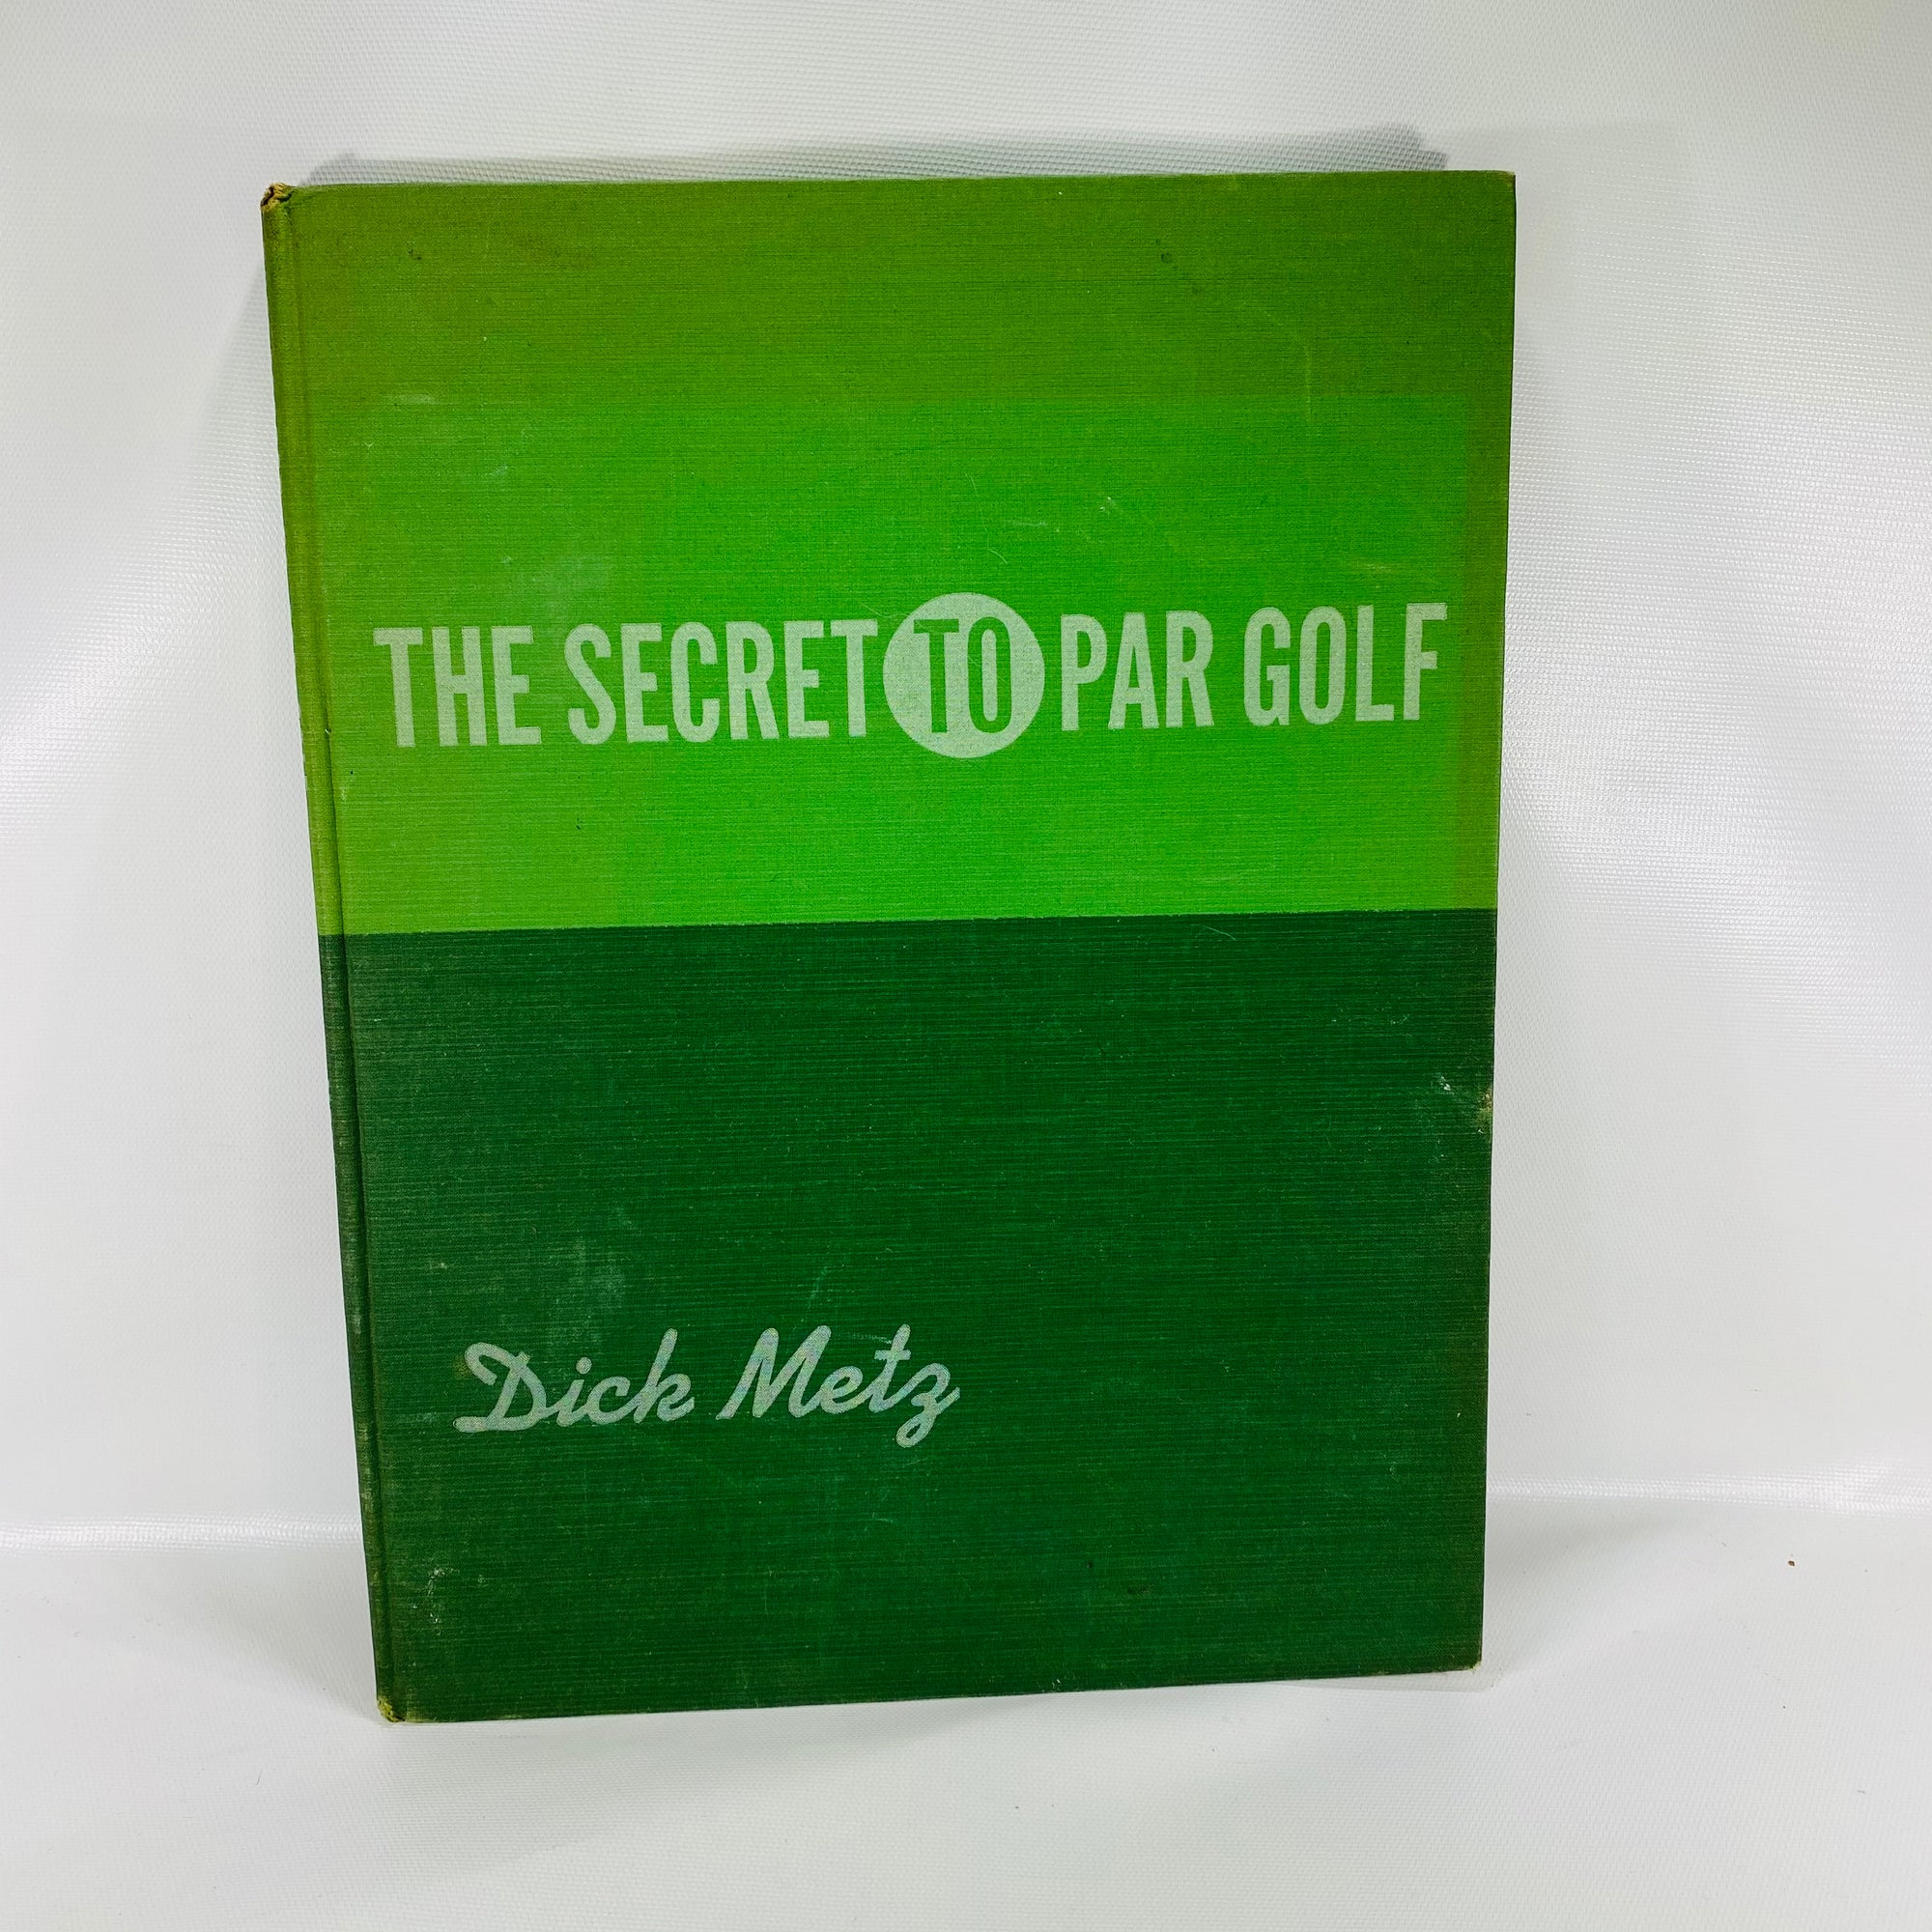 The Secret to Par Golf by Dick Metz 1940 MacMillan Company-Reading Vintage